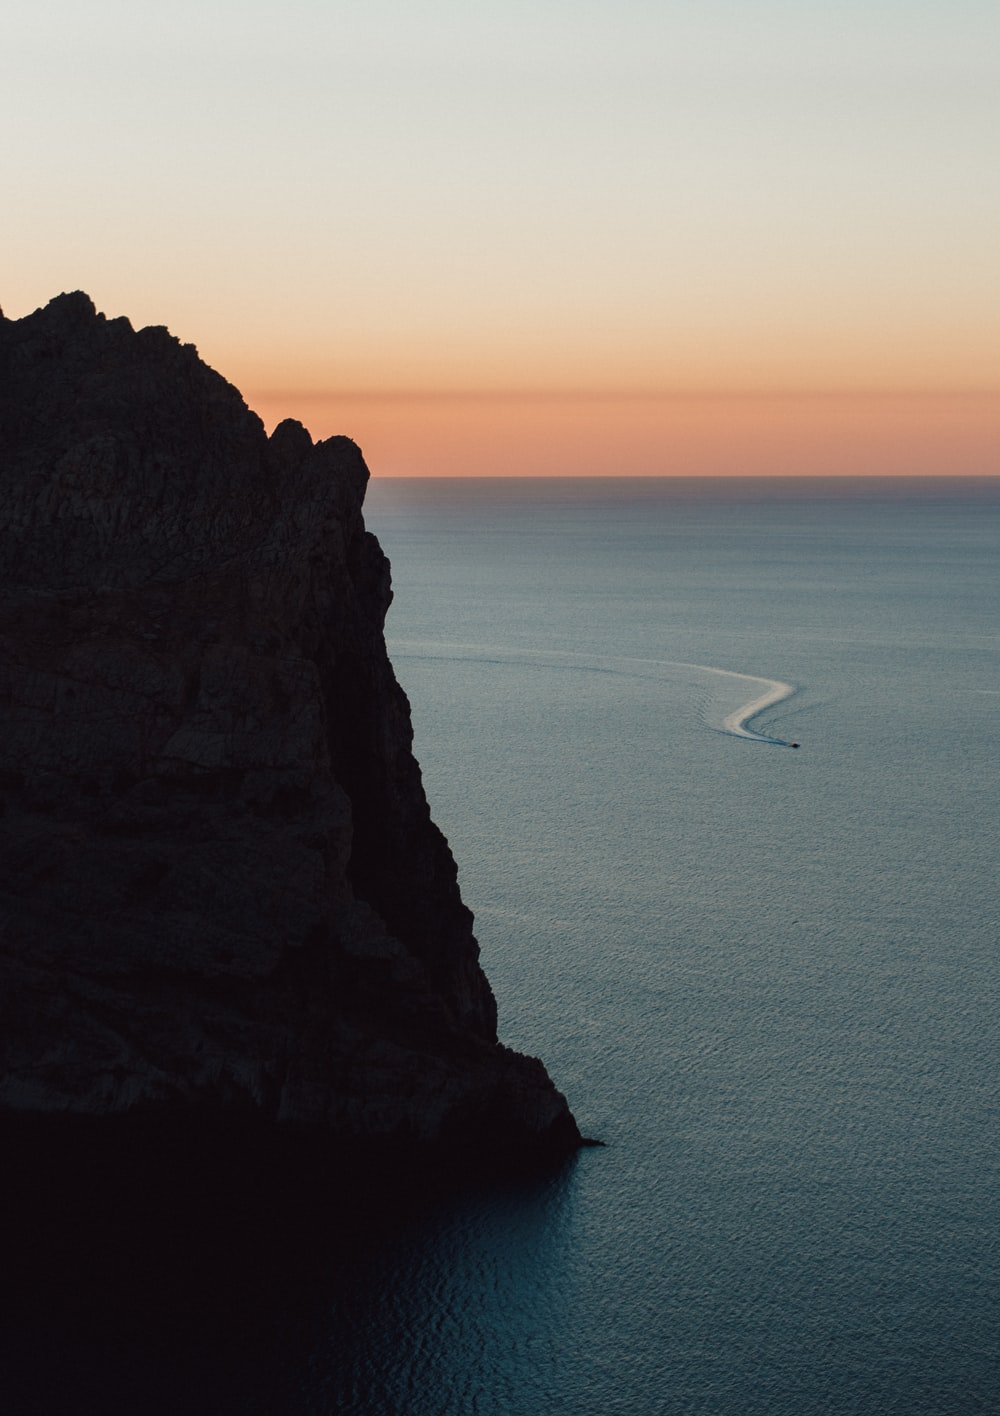 white sailboat on sea near brown rock formation during daytime